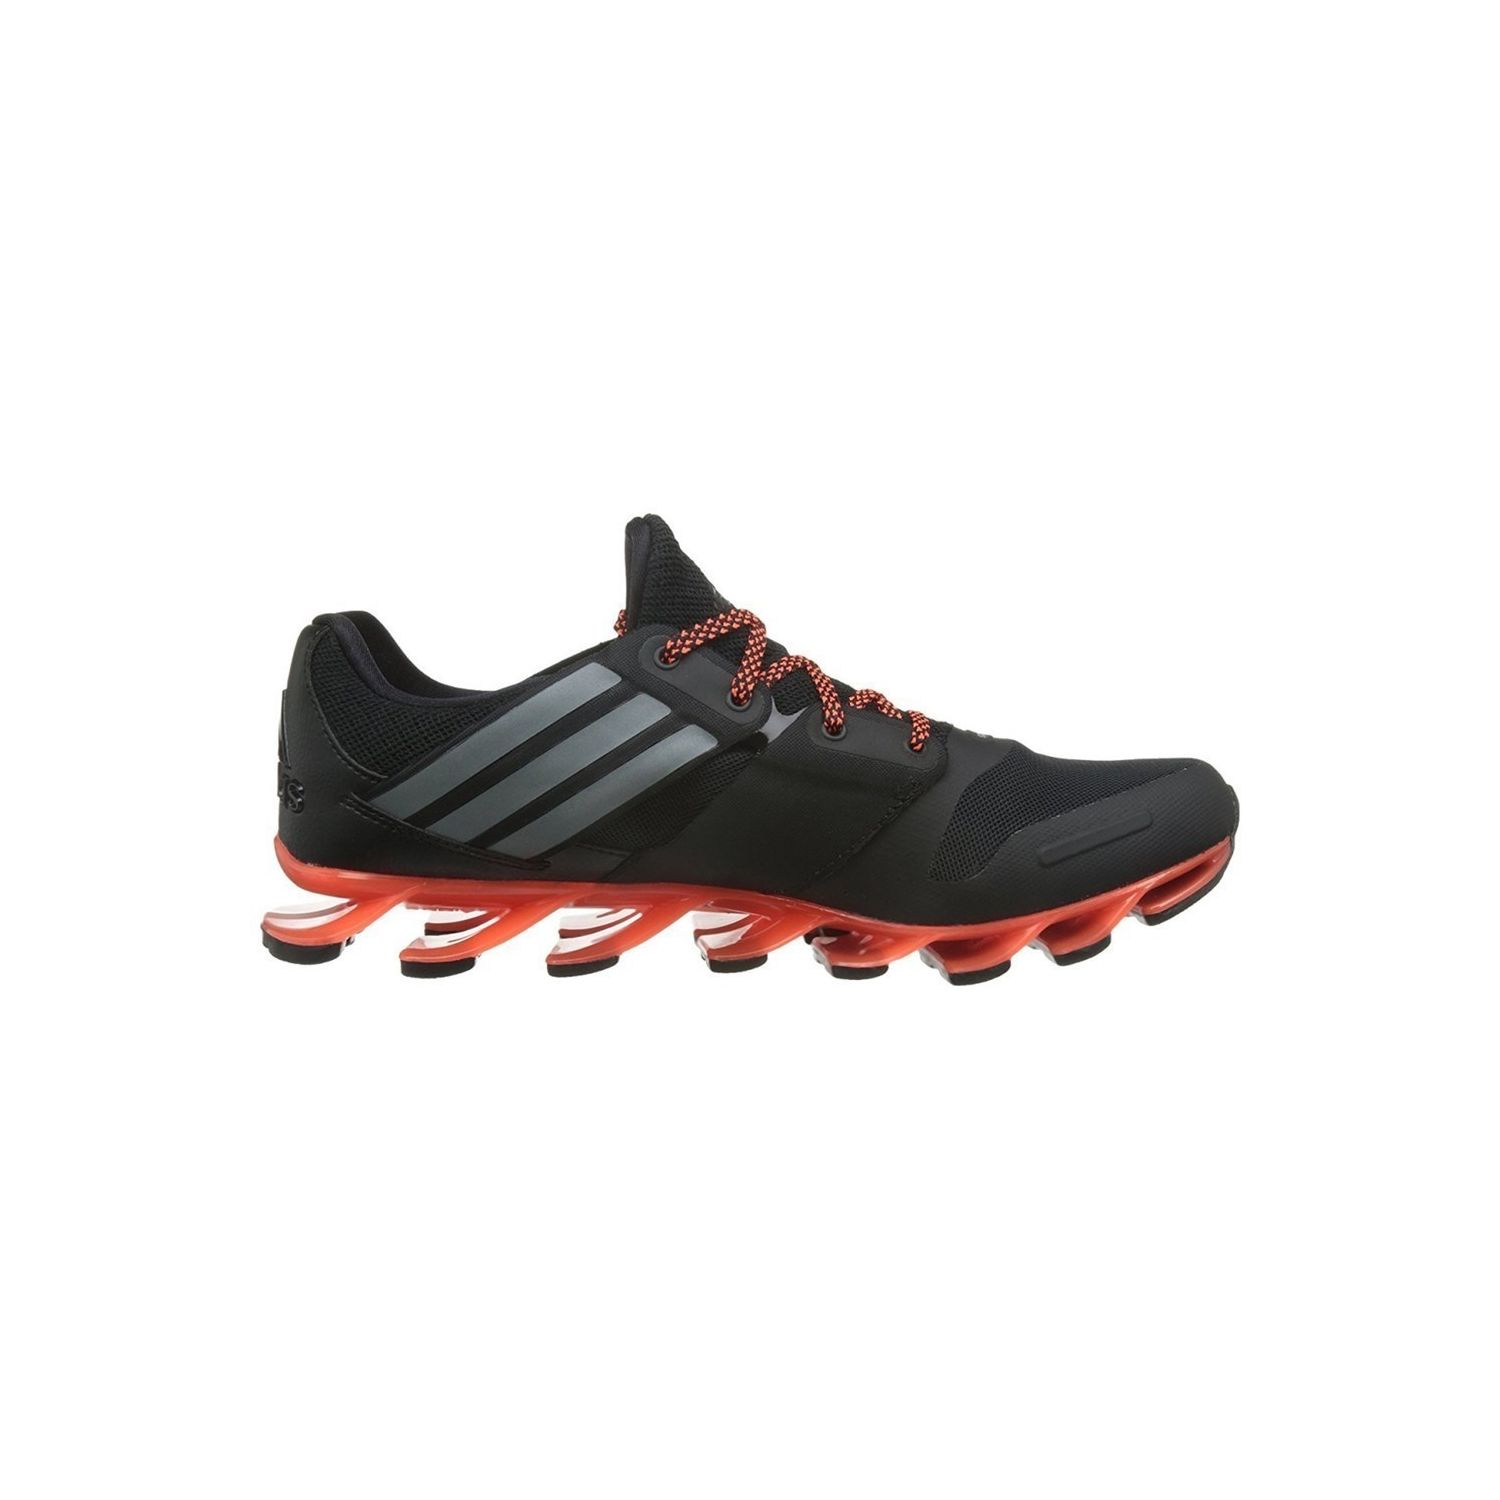 new product 37c3d 65de1 ... clearance m springblade cher pas adidas shoes solyce noir achat running  eazwqd f989f 7c1a7